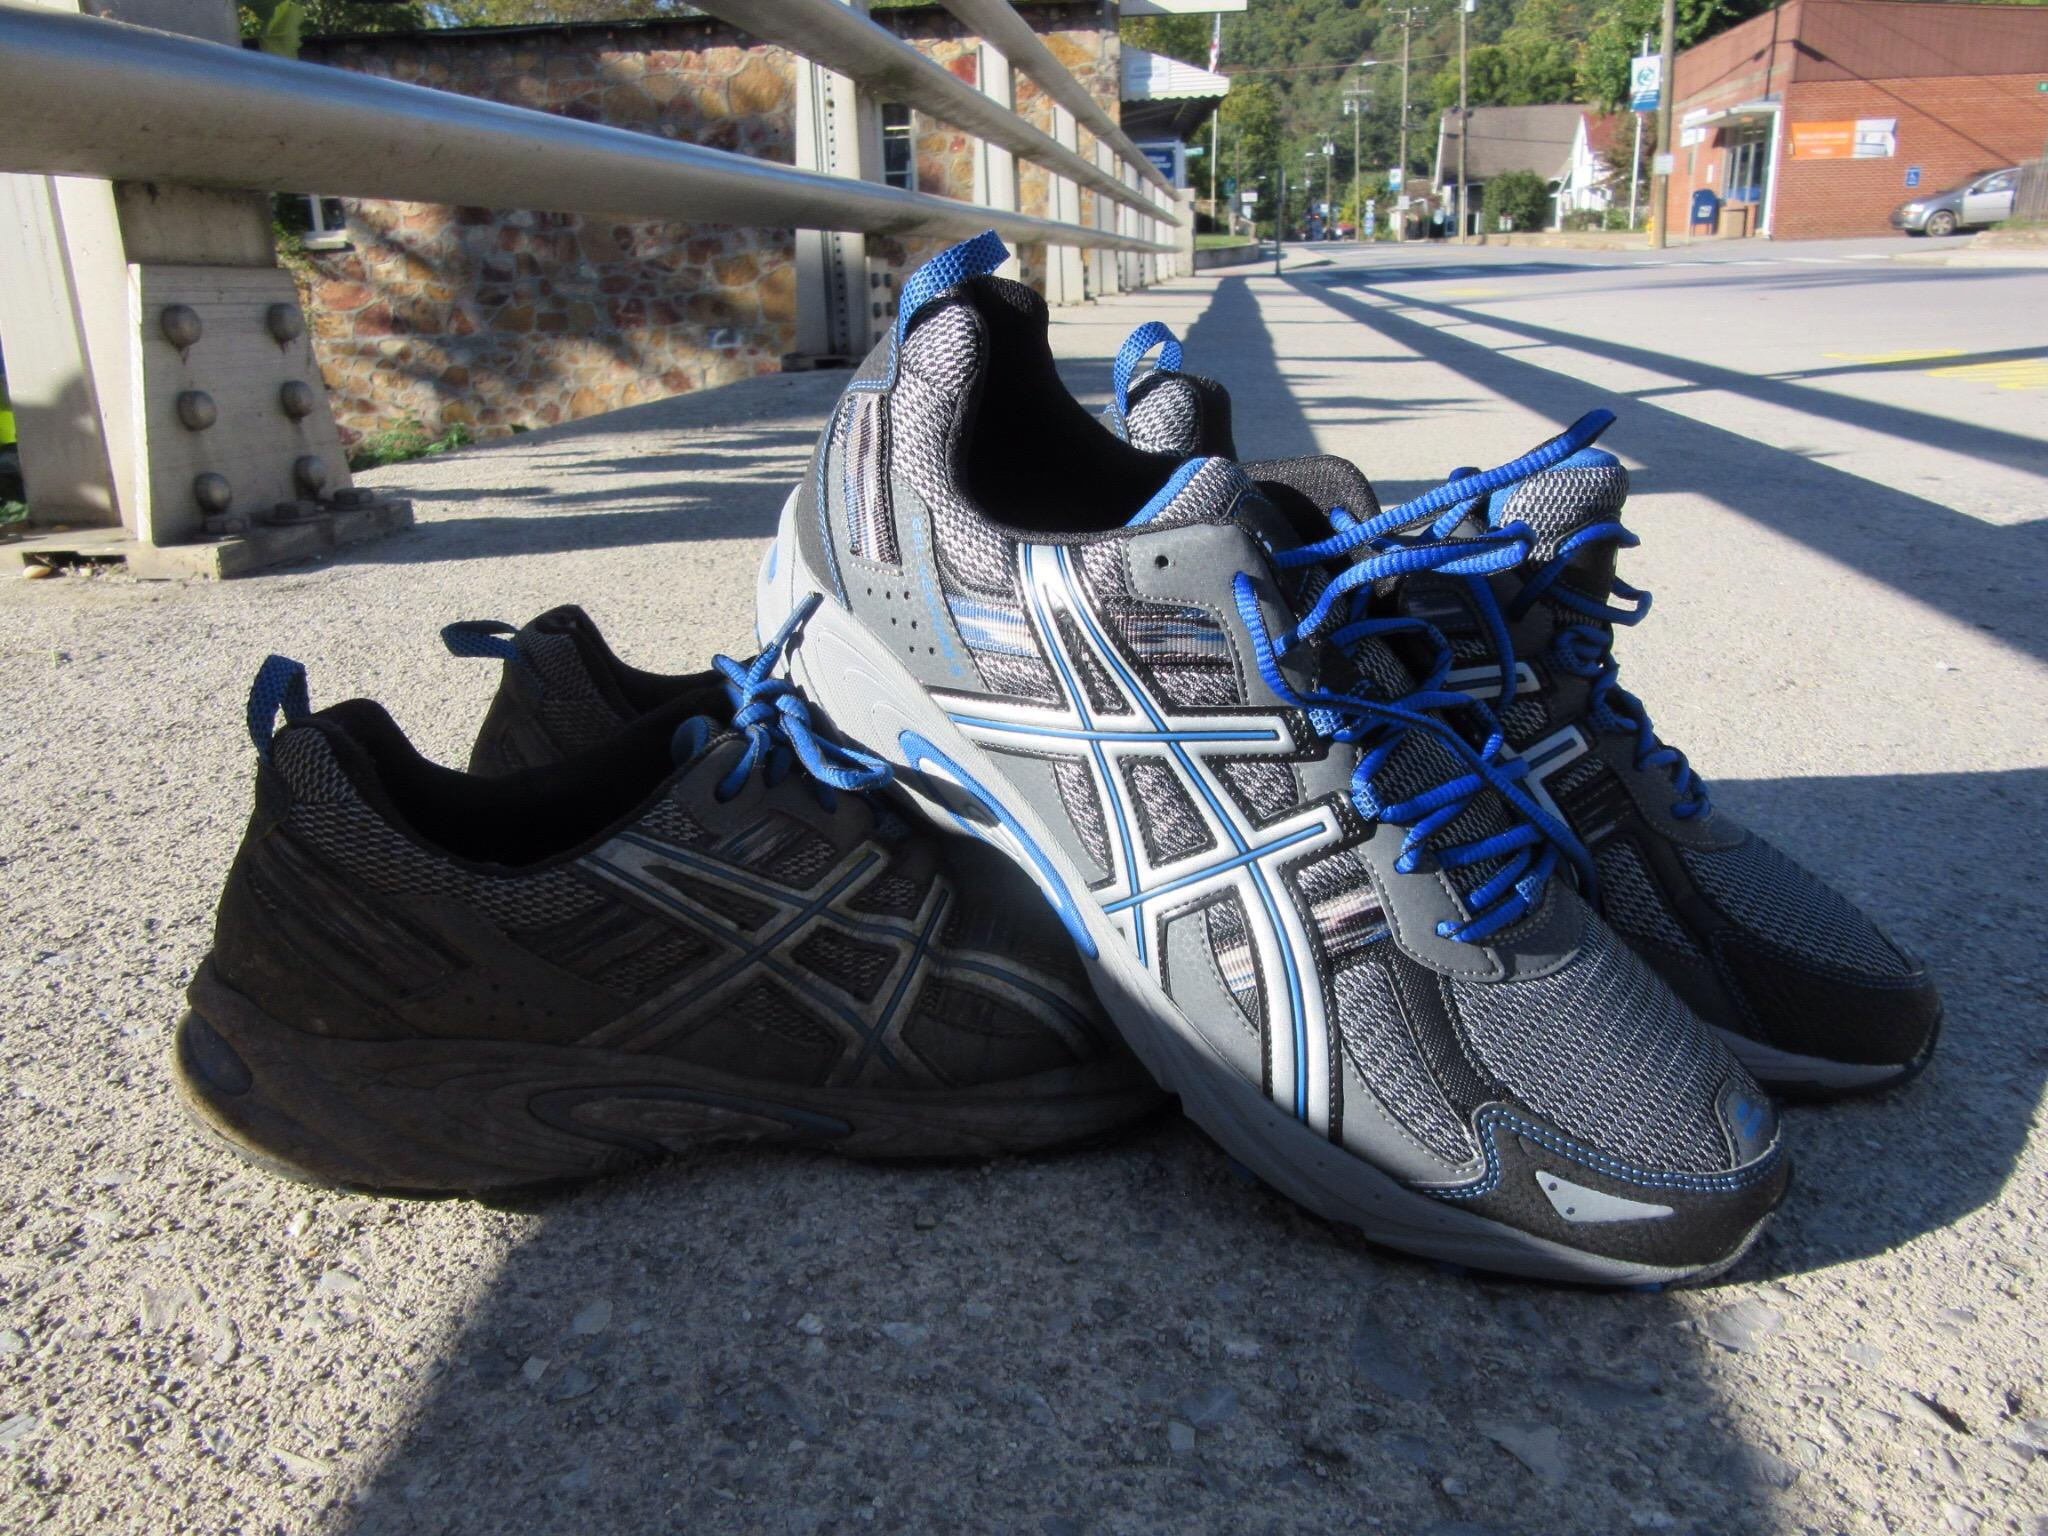 Corredor Condición previa El otro día  13 Best ASICS Running Shoes Reviewed in 2021 | RunnerClick